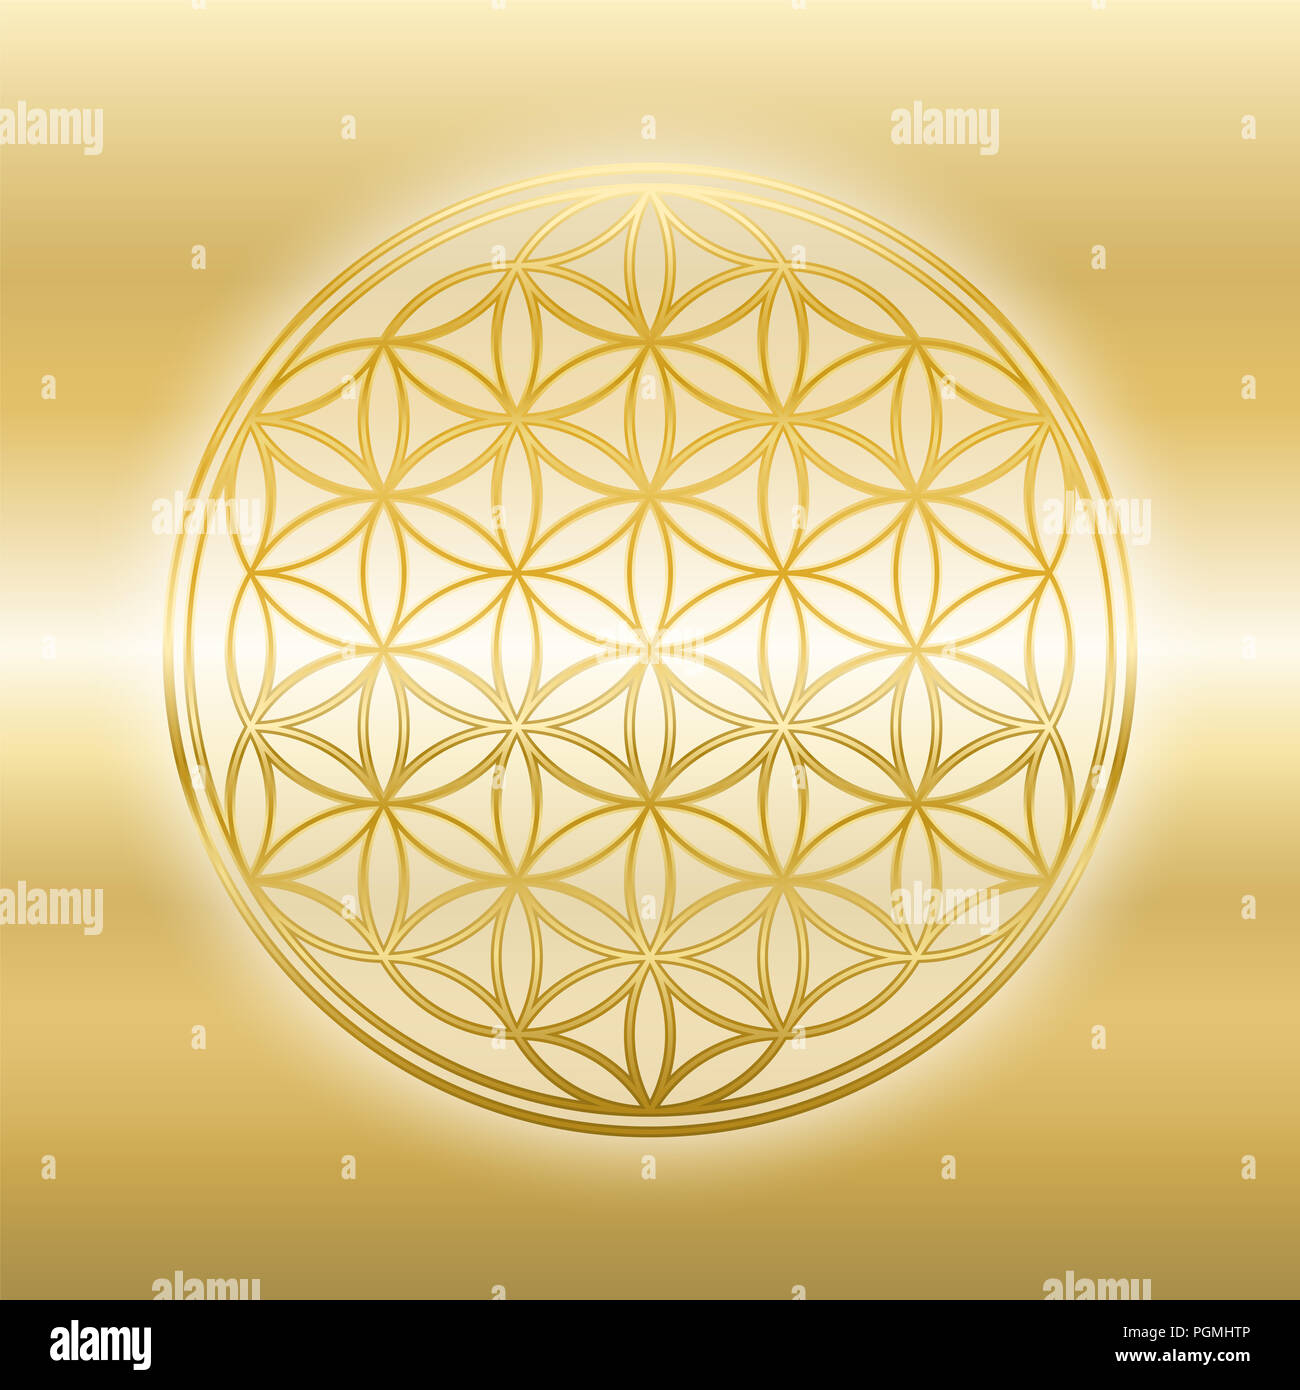 Golden Flower of Life, gleaming, glossy, gold symbol on golden background. - Stock Image